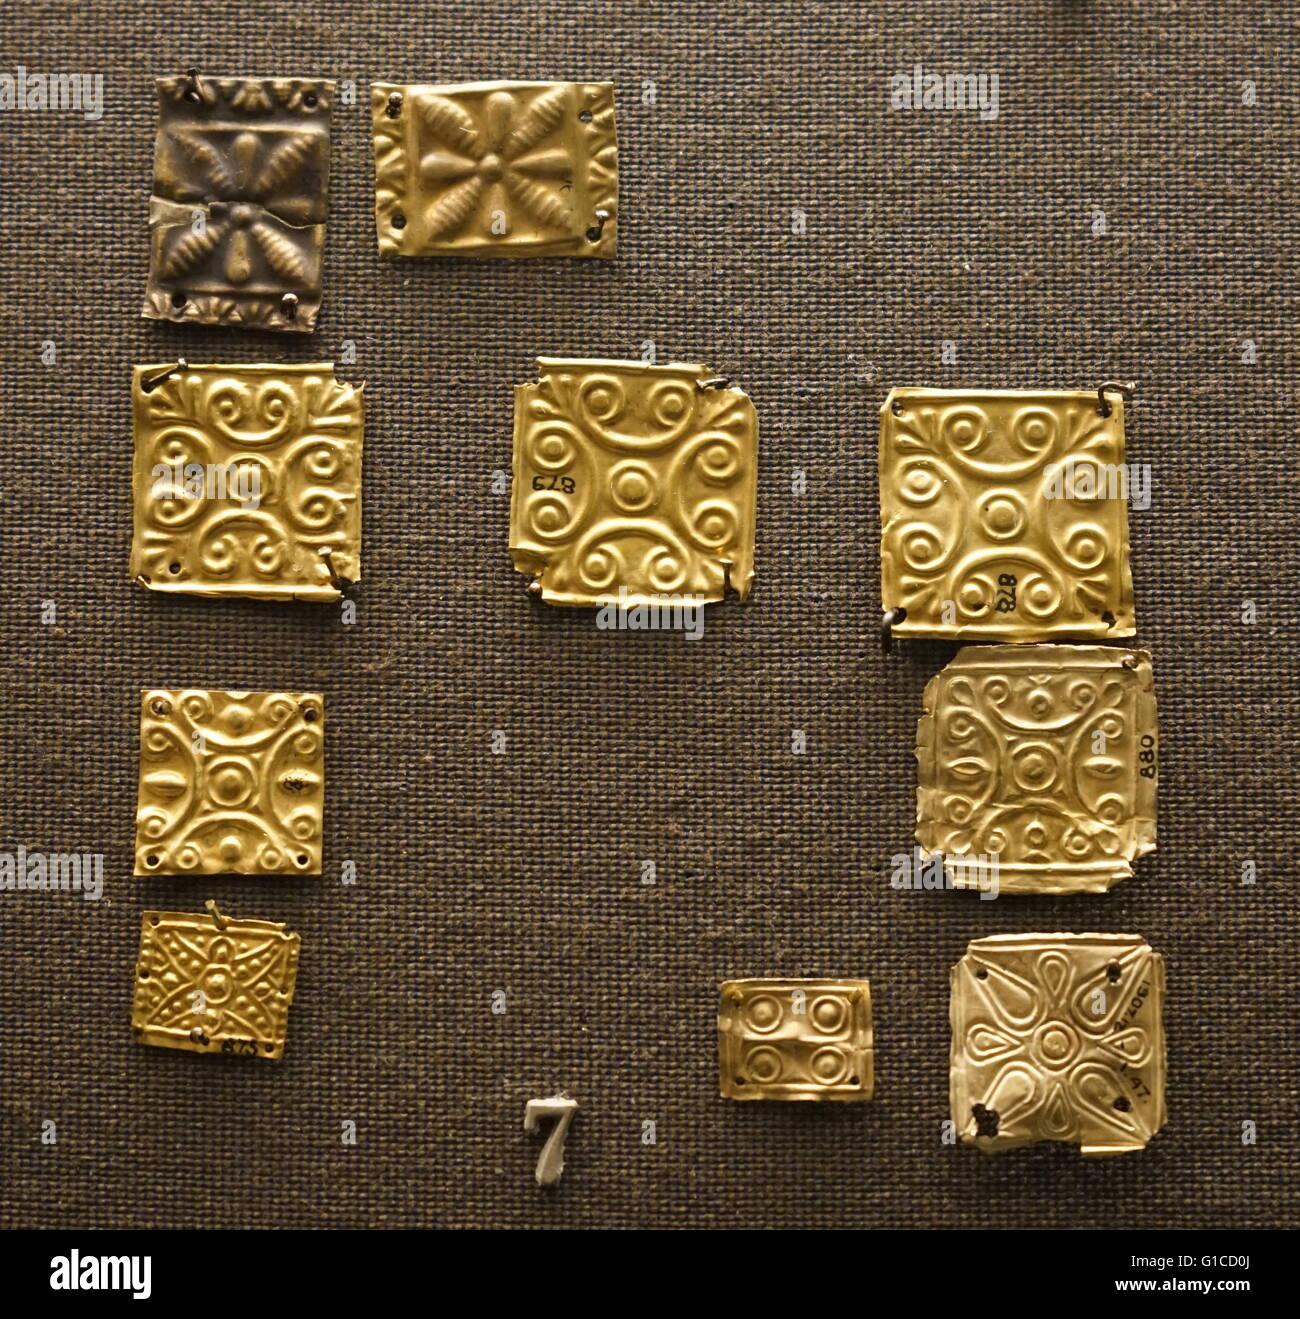 Embossed decorative gold tiles from ancient Greece. - Stock Image